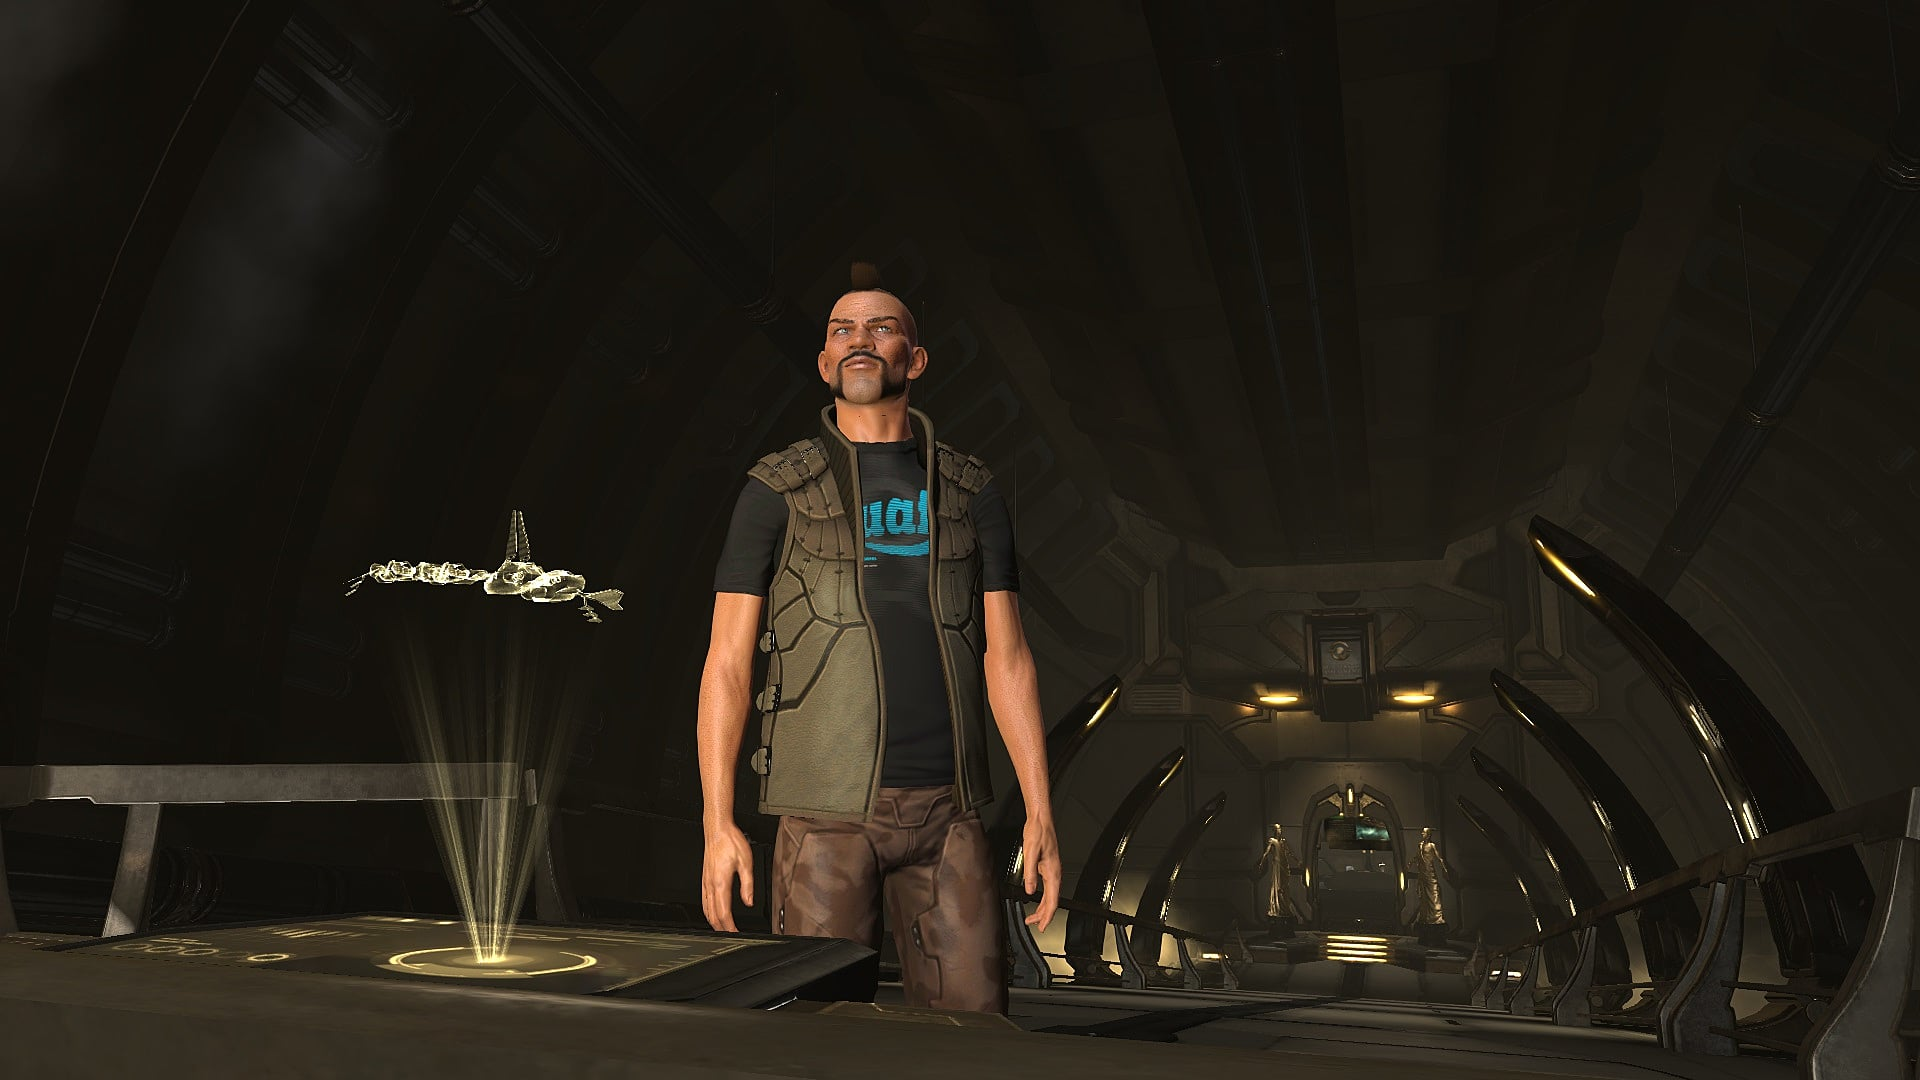 My Time in EVE Online: A Gallery of Internet Spaceship